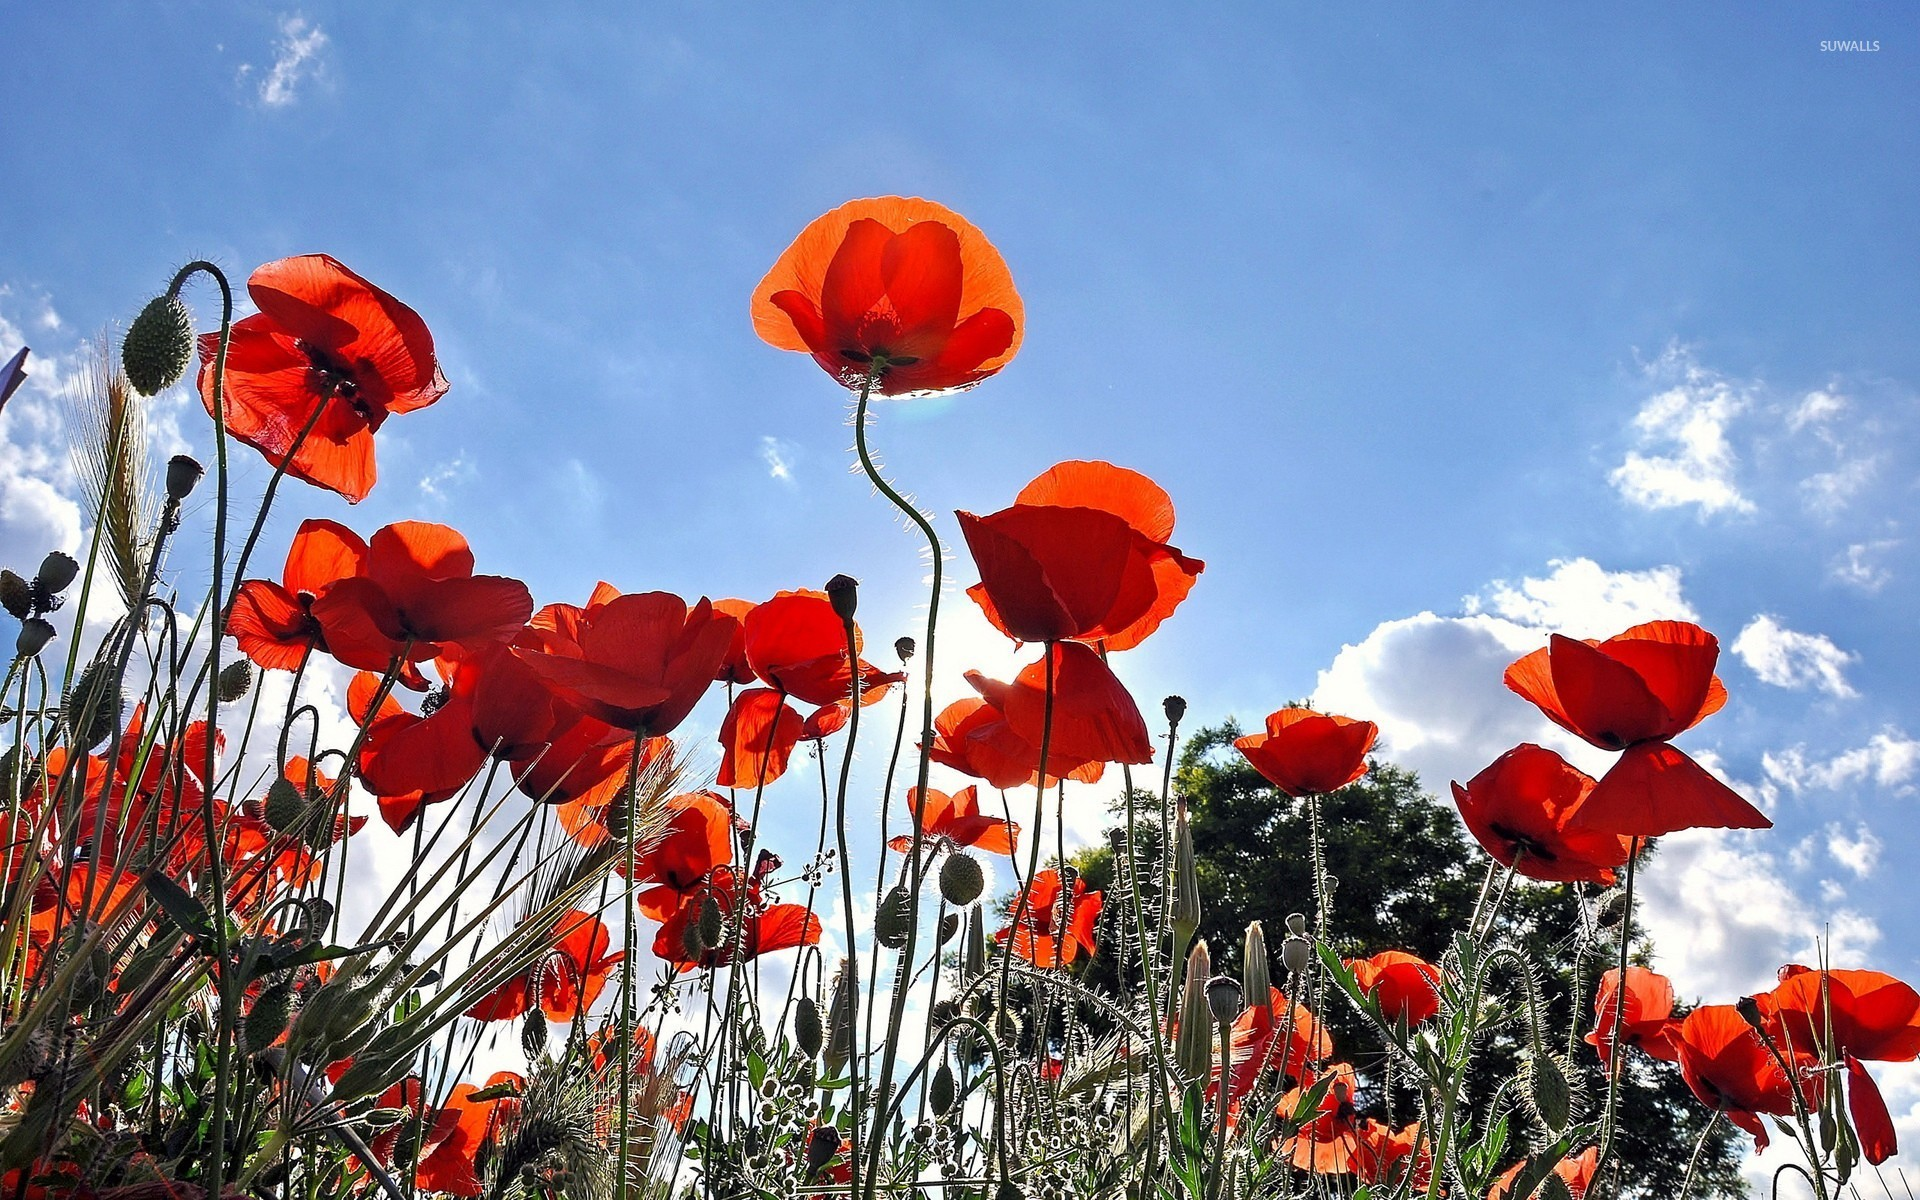 poppies wallpaper - flower wallpapers - #11490